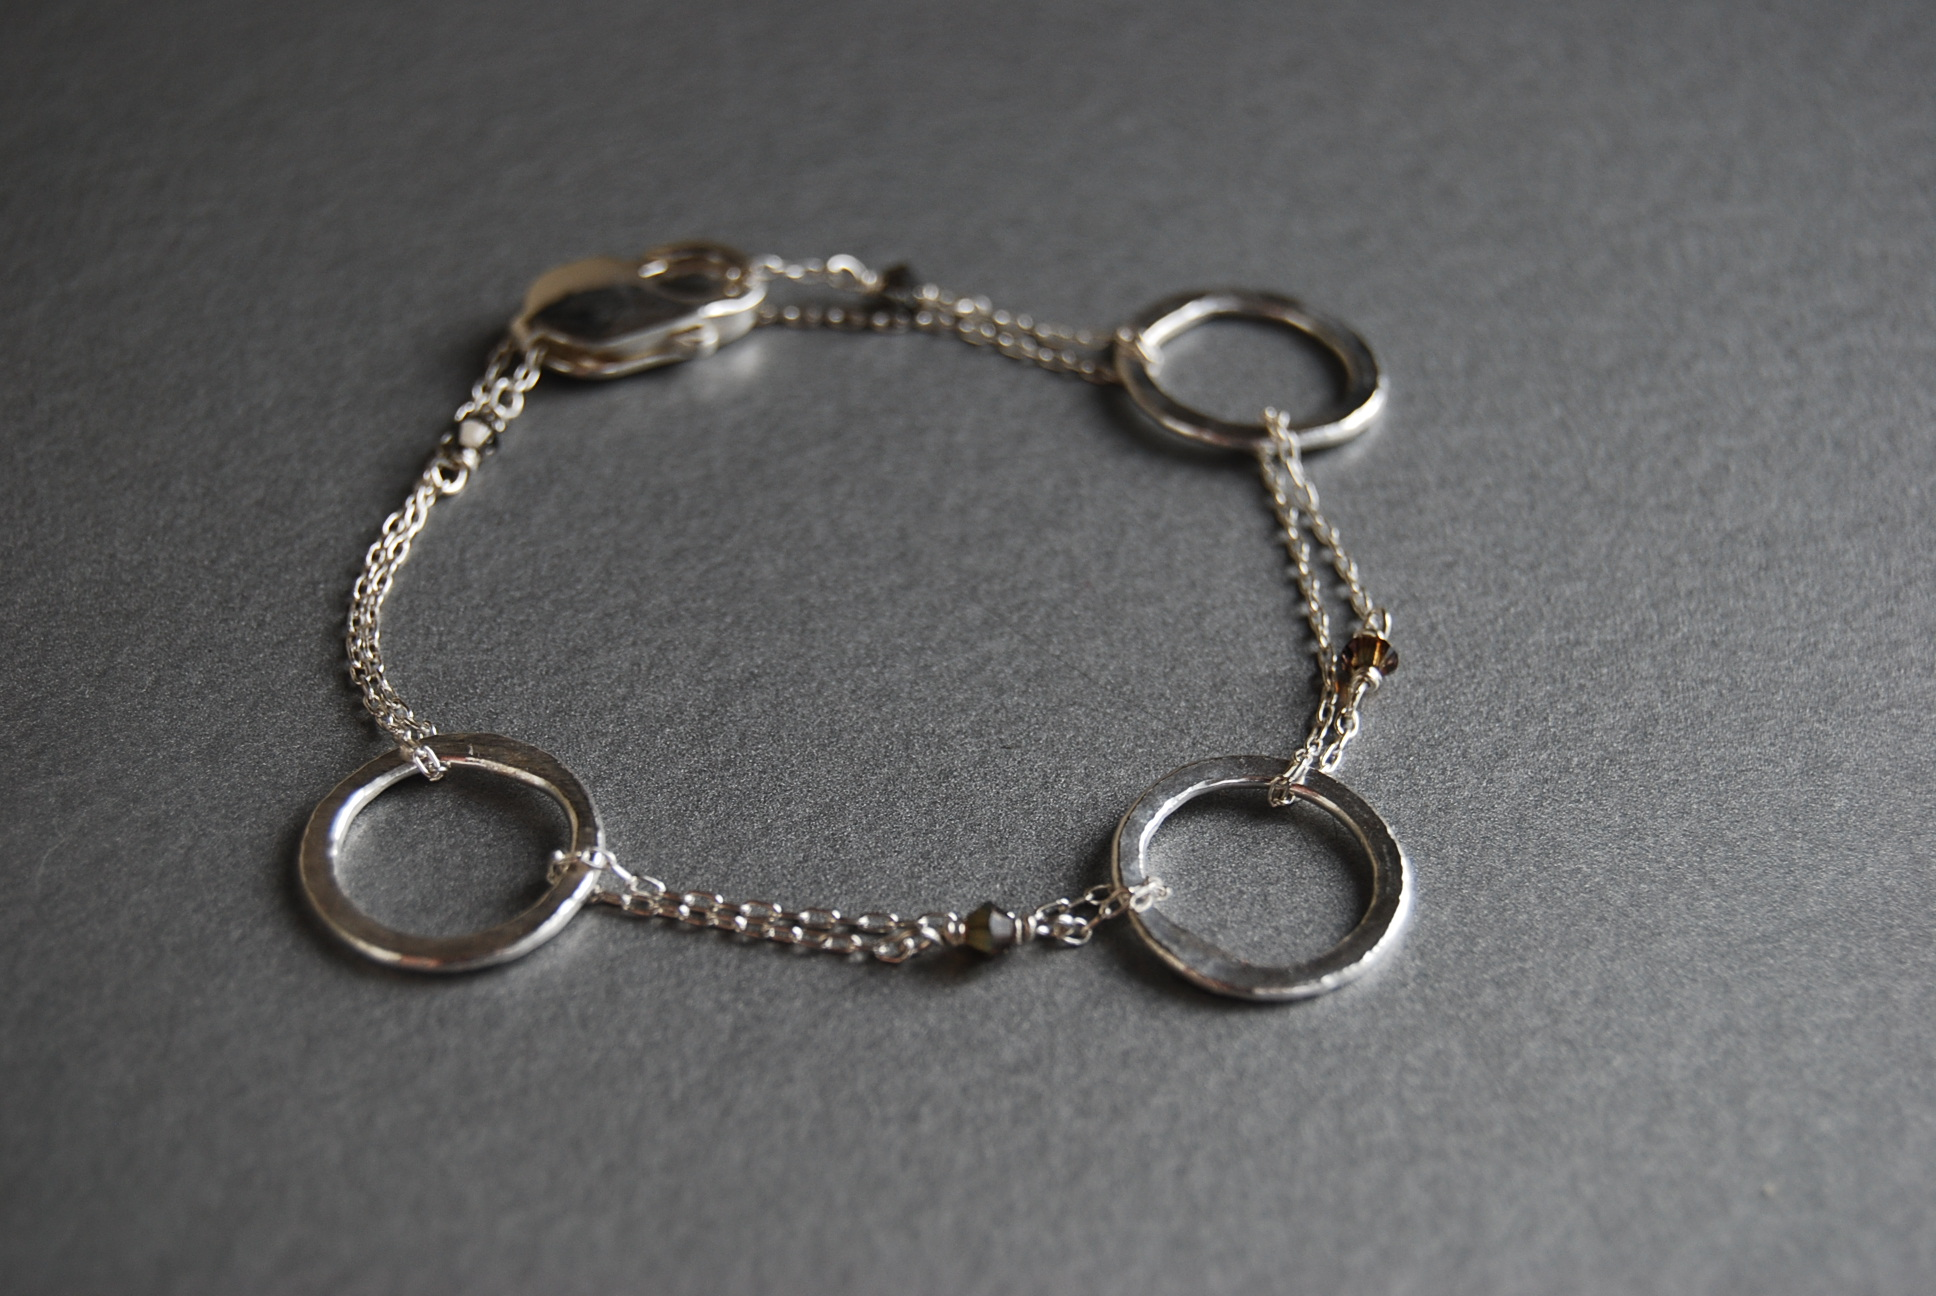 Fine Silver Ring Bracelet :  Fine silver rings are hand made and hammered.  They are linked along with sterling silver chain and Swarovski crystals.